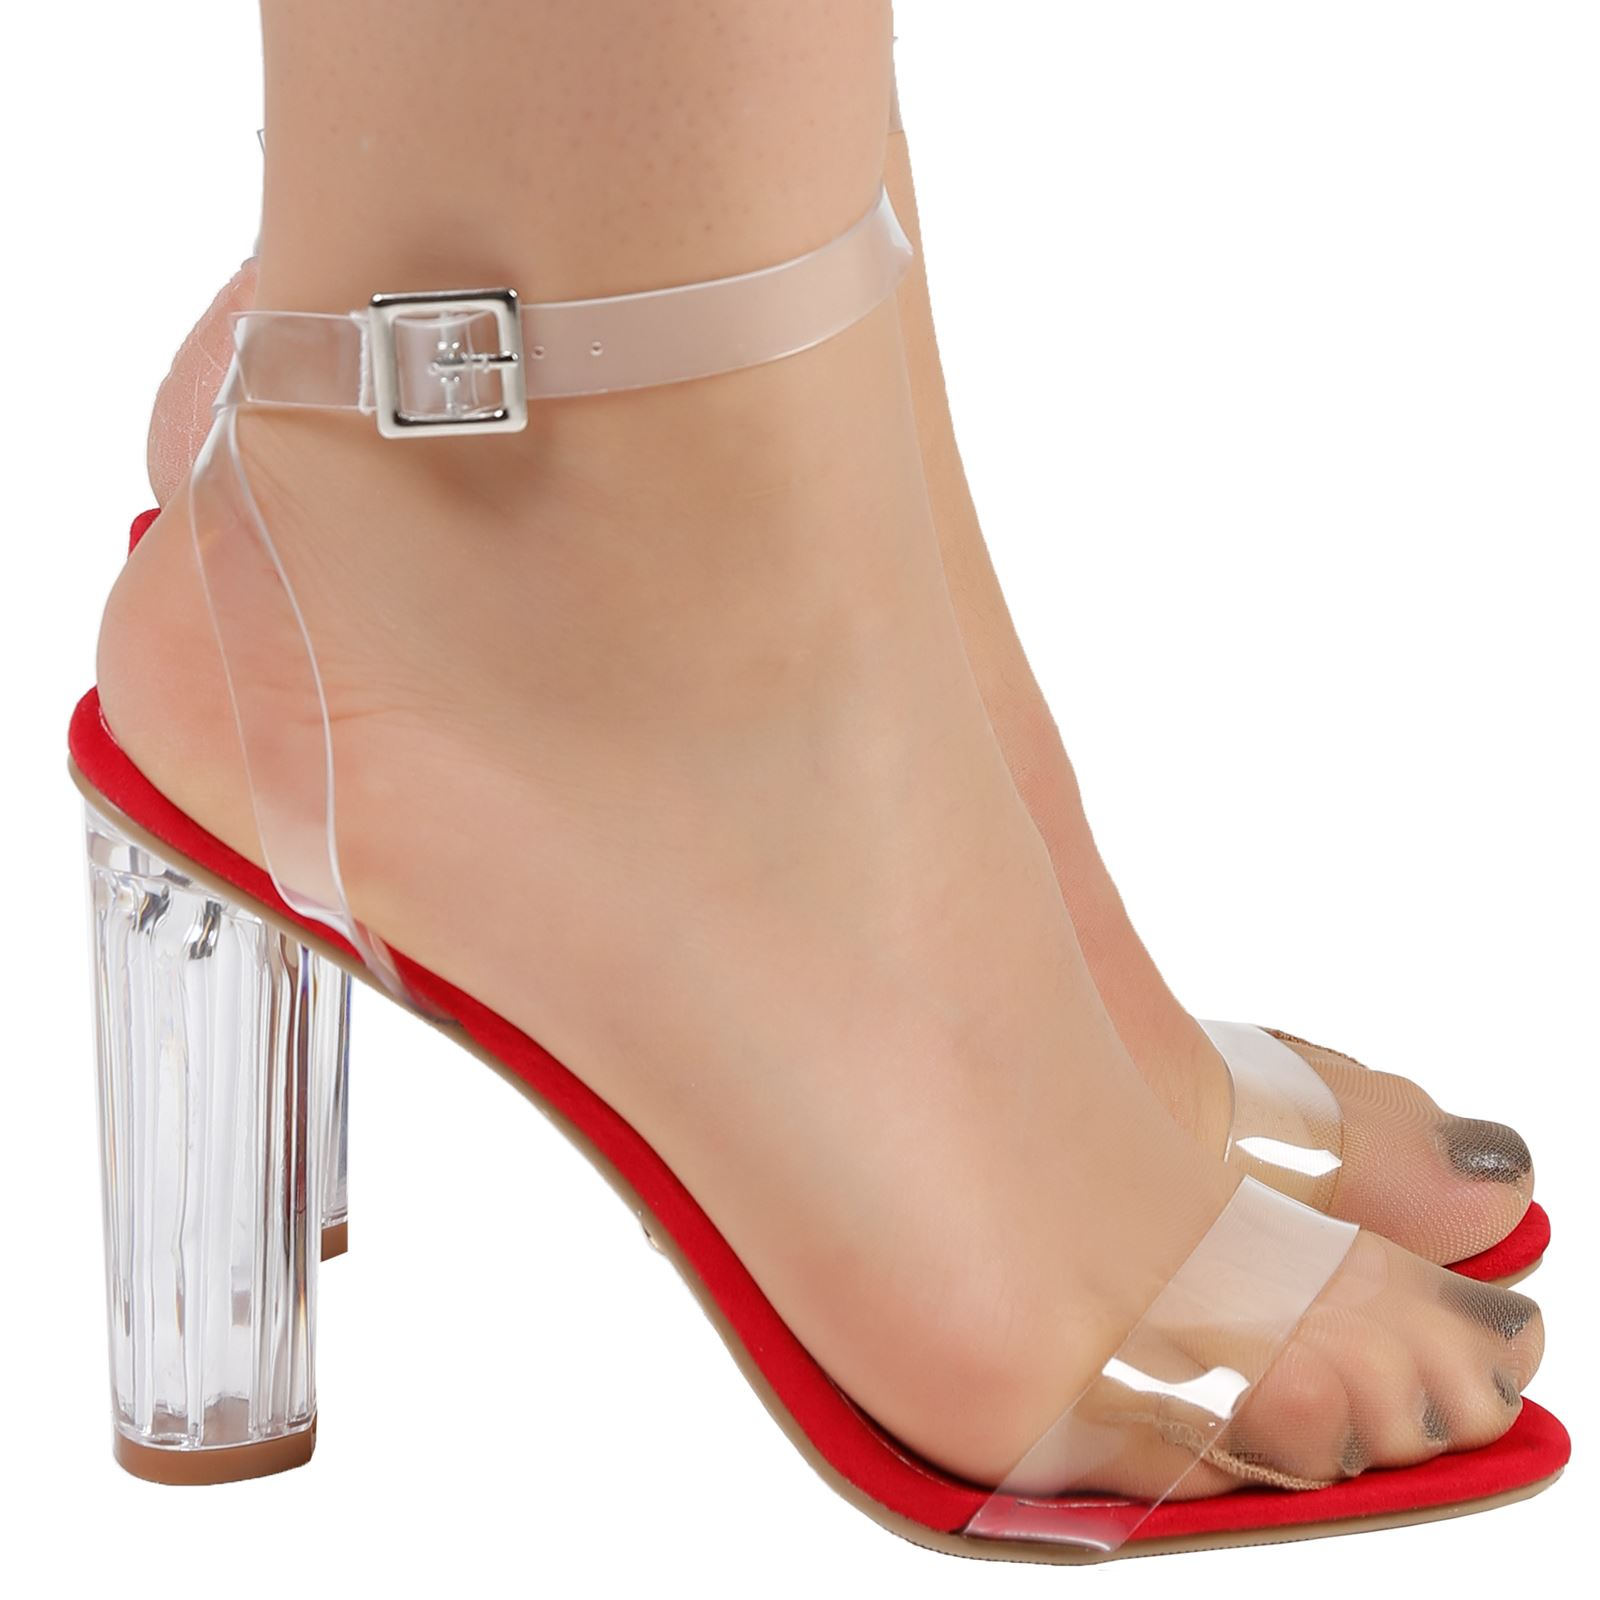 Reagan-Womens-High-Clear-Heels-Ankle-Strappy-Open-Toe-Ladies-Sandals-Shoes-Size